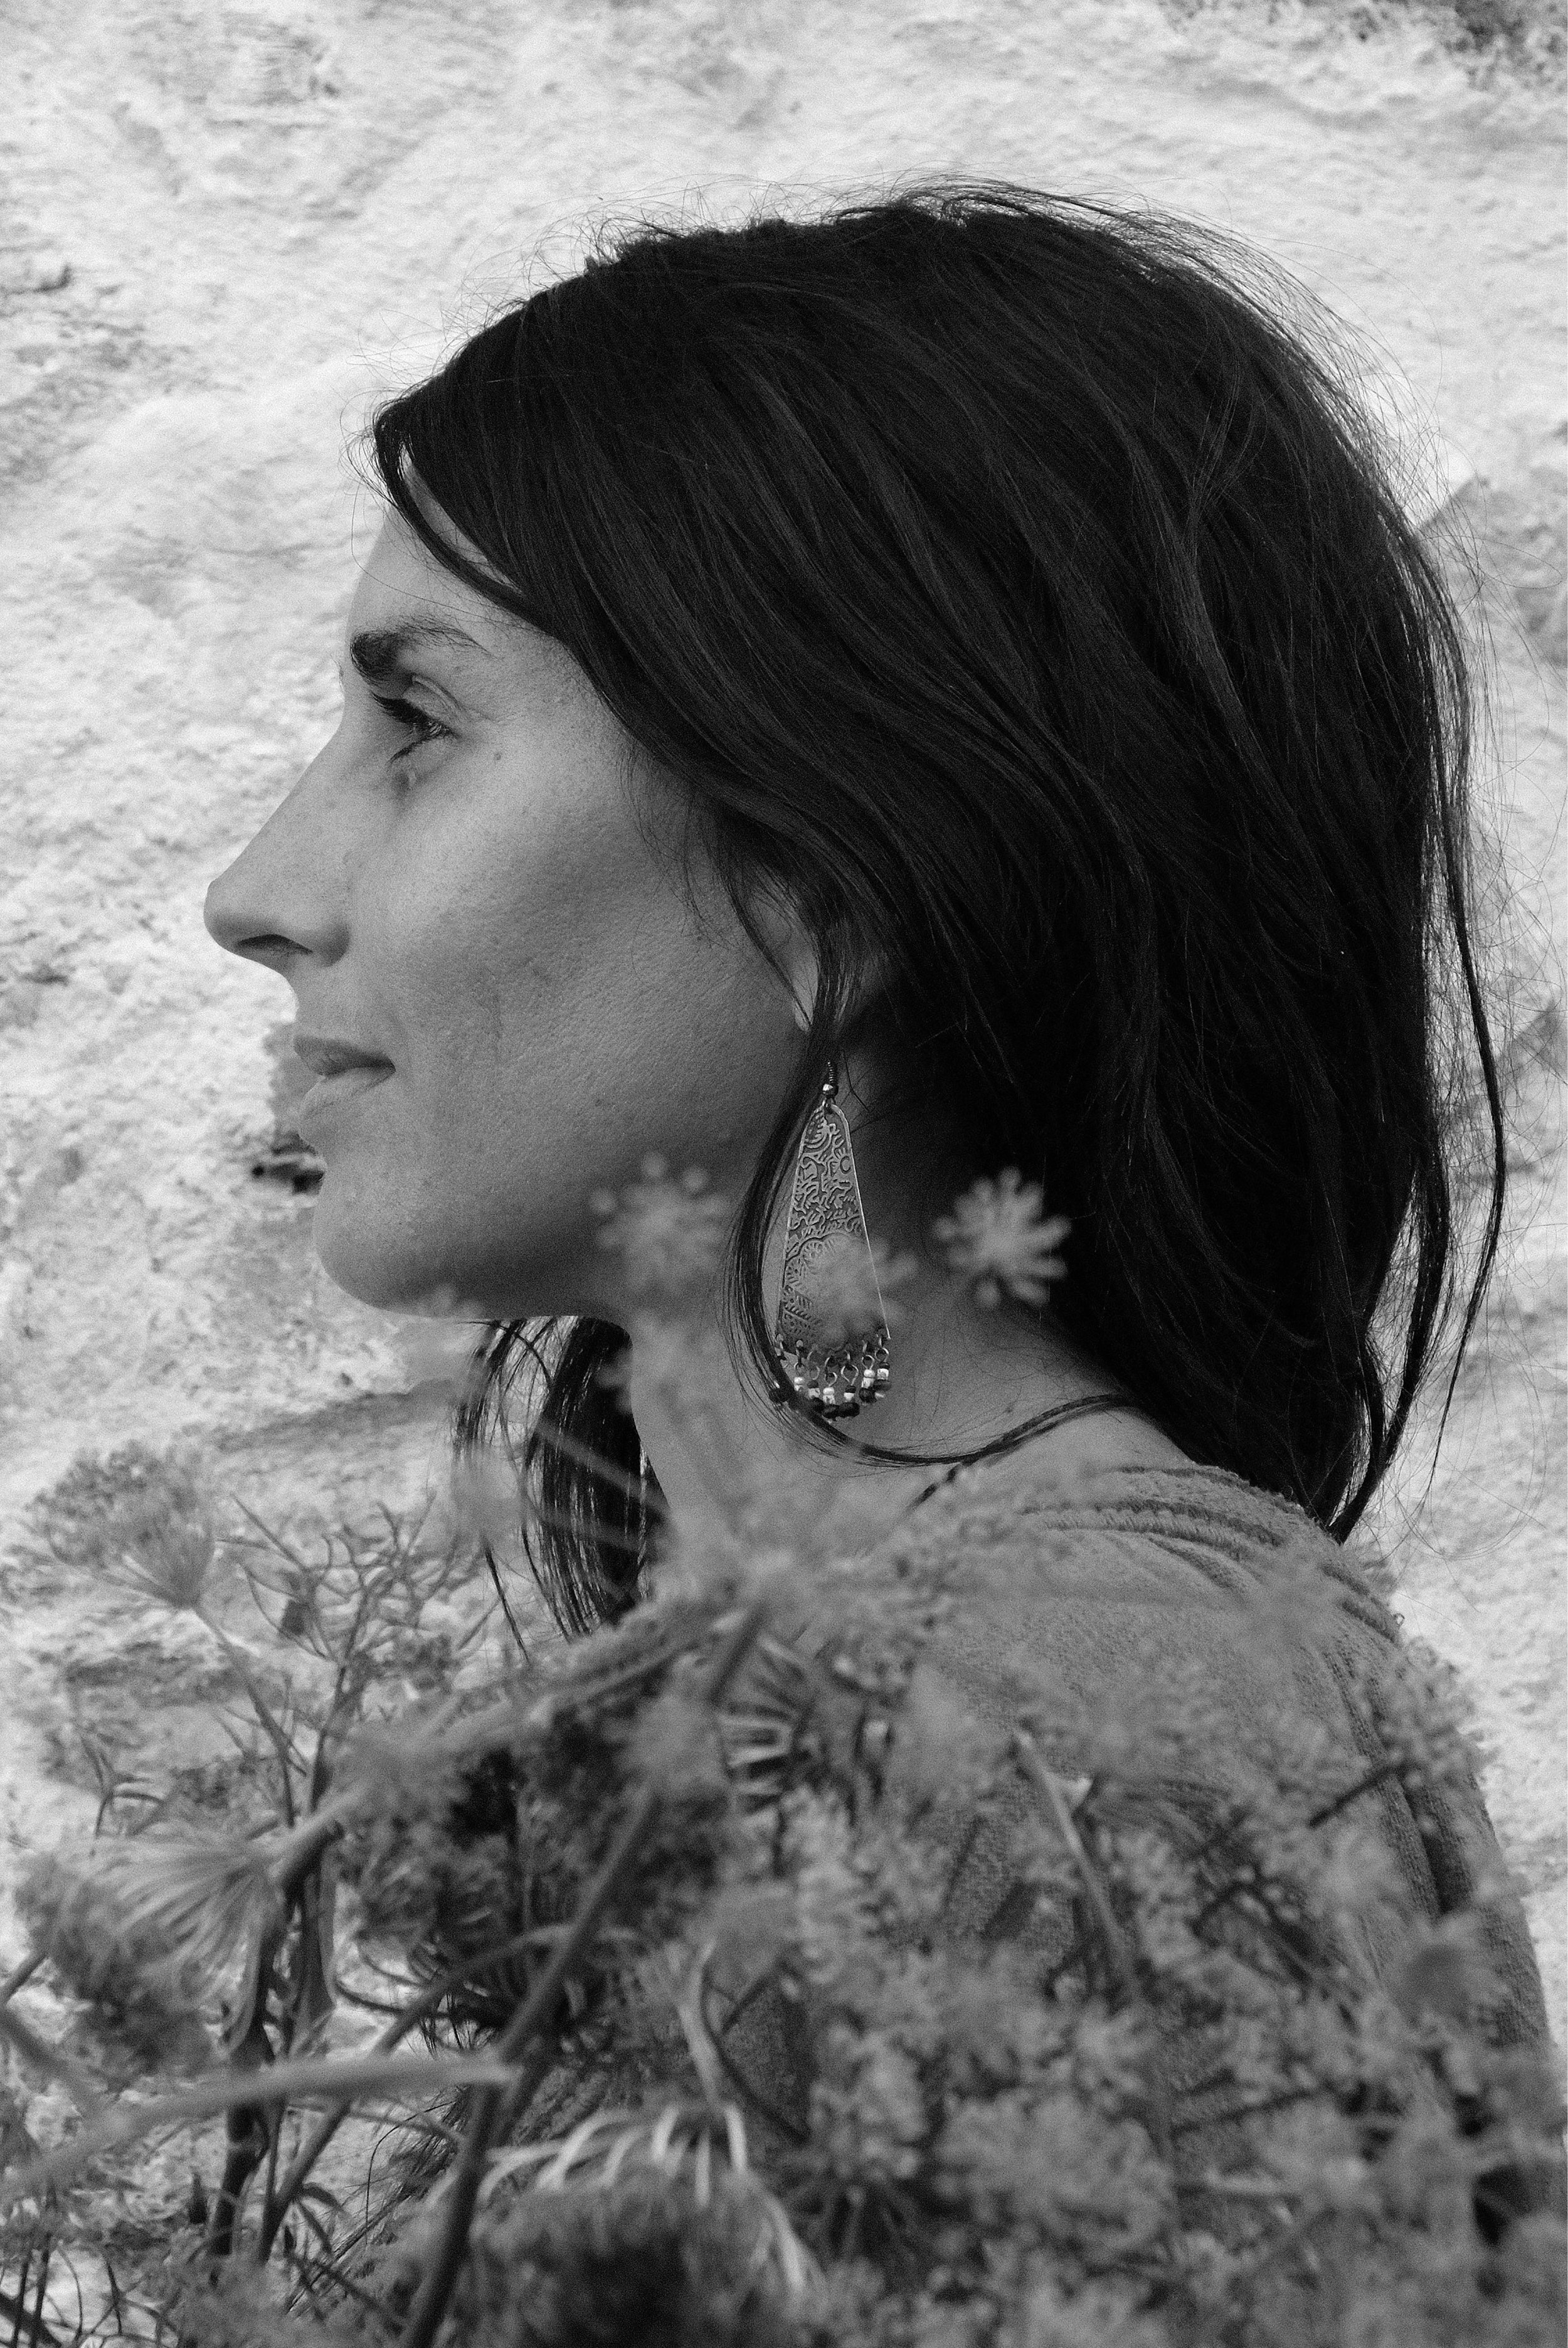 Severine Perron - Severine Perron is a medicine woman and poetess.She supports the resilience and expansion of women, through her art, knowledge of plants and ancient wisdoms, open heart and mother earth, for deep spiritual work on women's lineages and their identity. Path that she herself explored for her own expansion.Poetess, Séverine published a collection of poetry talking about the resilience of women.The community project Les Herbes Vives is the manifestation of her vision to the world, supportive for women who create consciously and manifest intentionally. Regaining their personal power, creativity and responsibility as guardians.Mother of two daughters, natural living is at the heart of her model healing. Individual and collective responsibility, preserving diversity and cultural identity as the basis of a new vision for humanity.